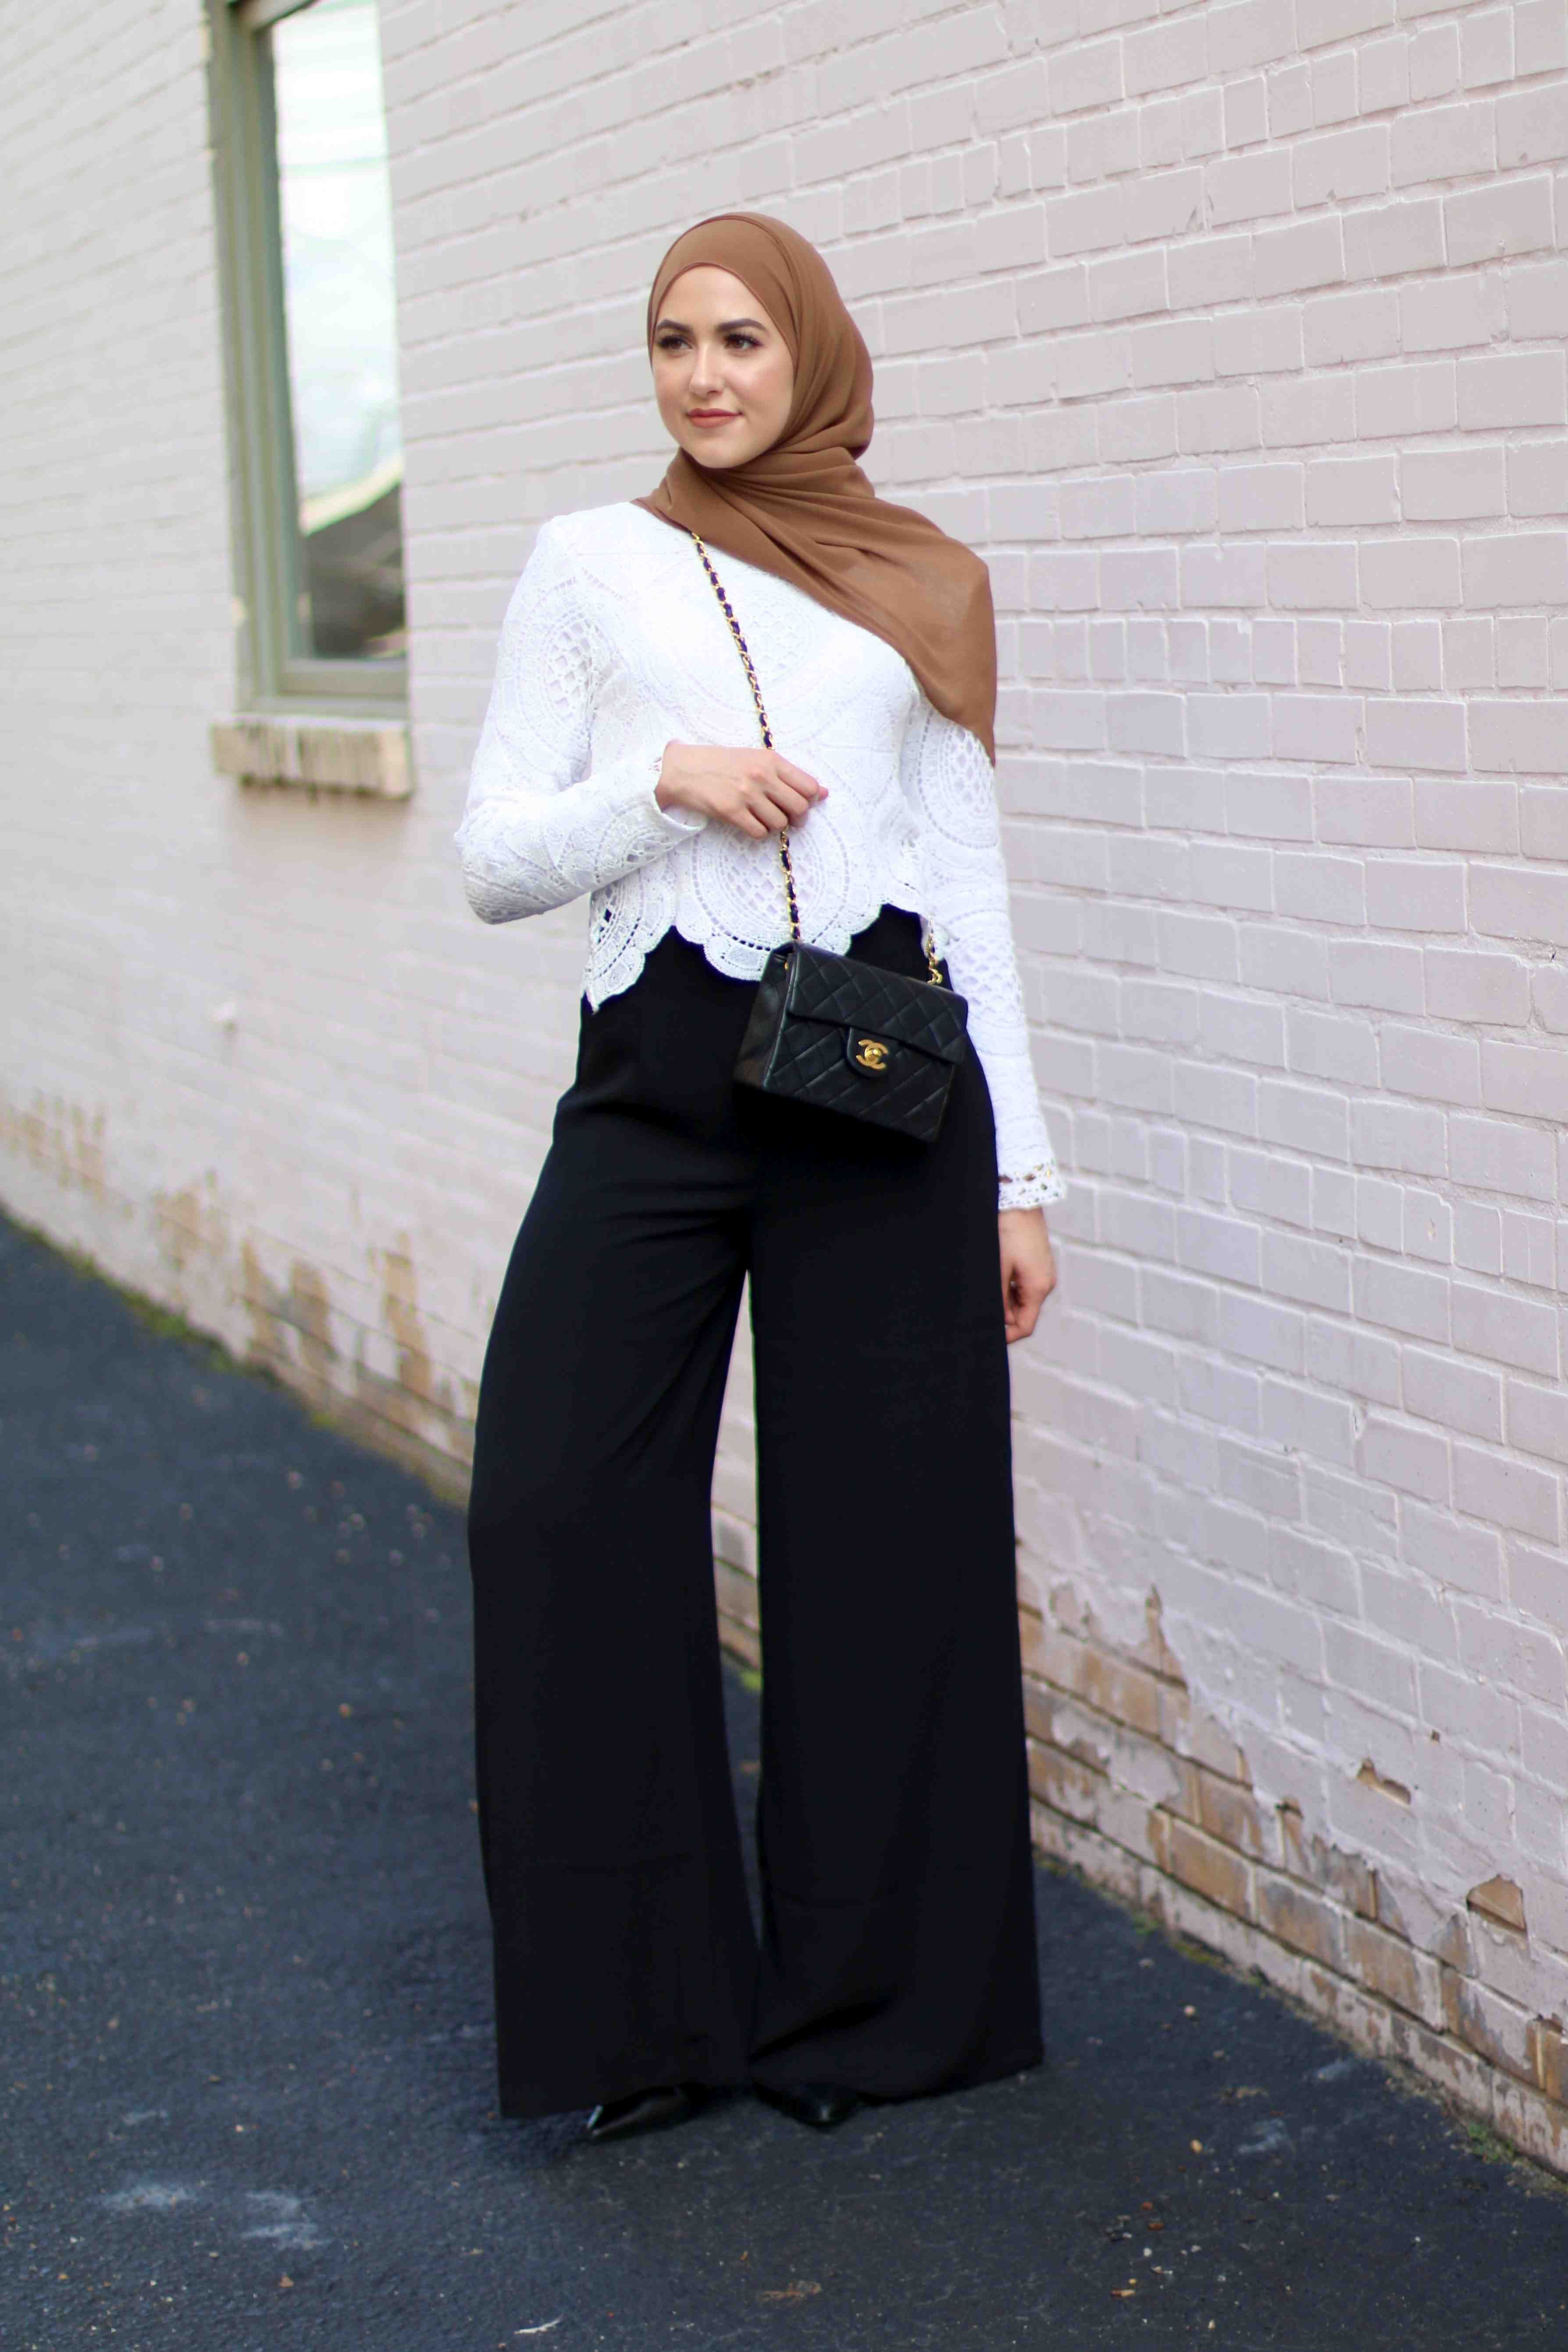 d69095c3b With Love, Leena | Leena Asad | white lace scalloped edge crop top shirt +  black long loose pants + pointed toe heels + tan hijab/scarf + black Chanel  mini ...